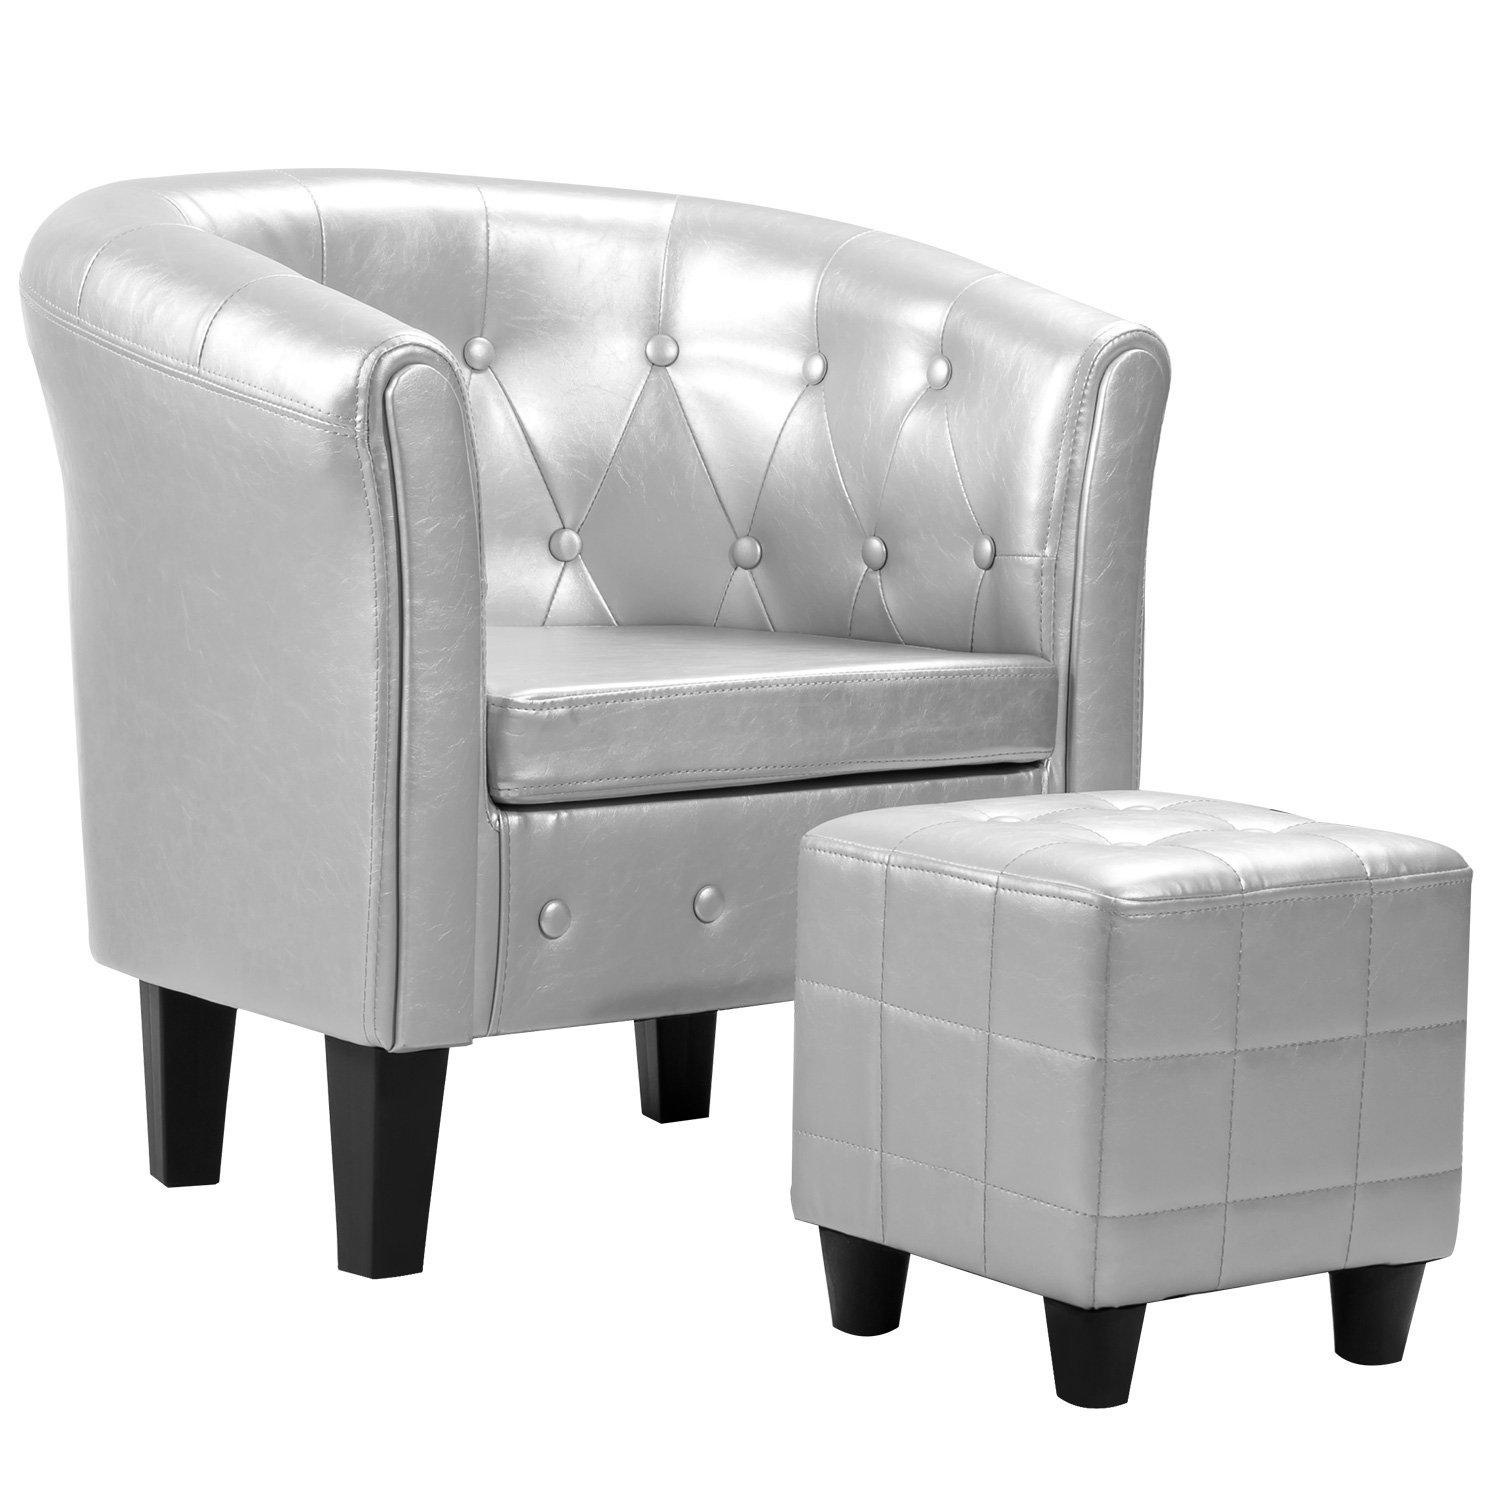 Harper&Bright Designs Armchair Upholstered Living Room Club Chair with Ottoman